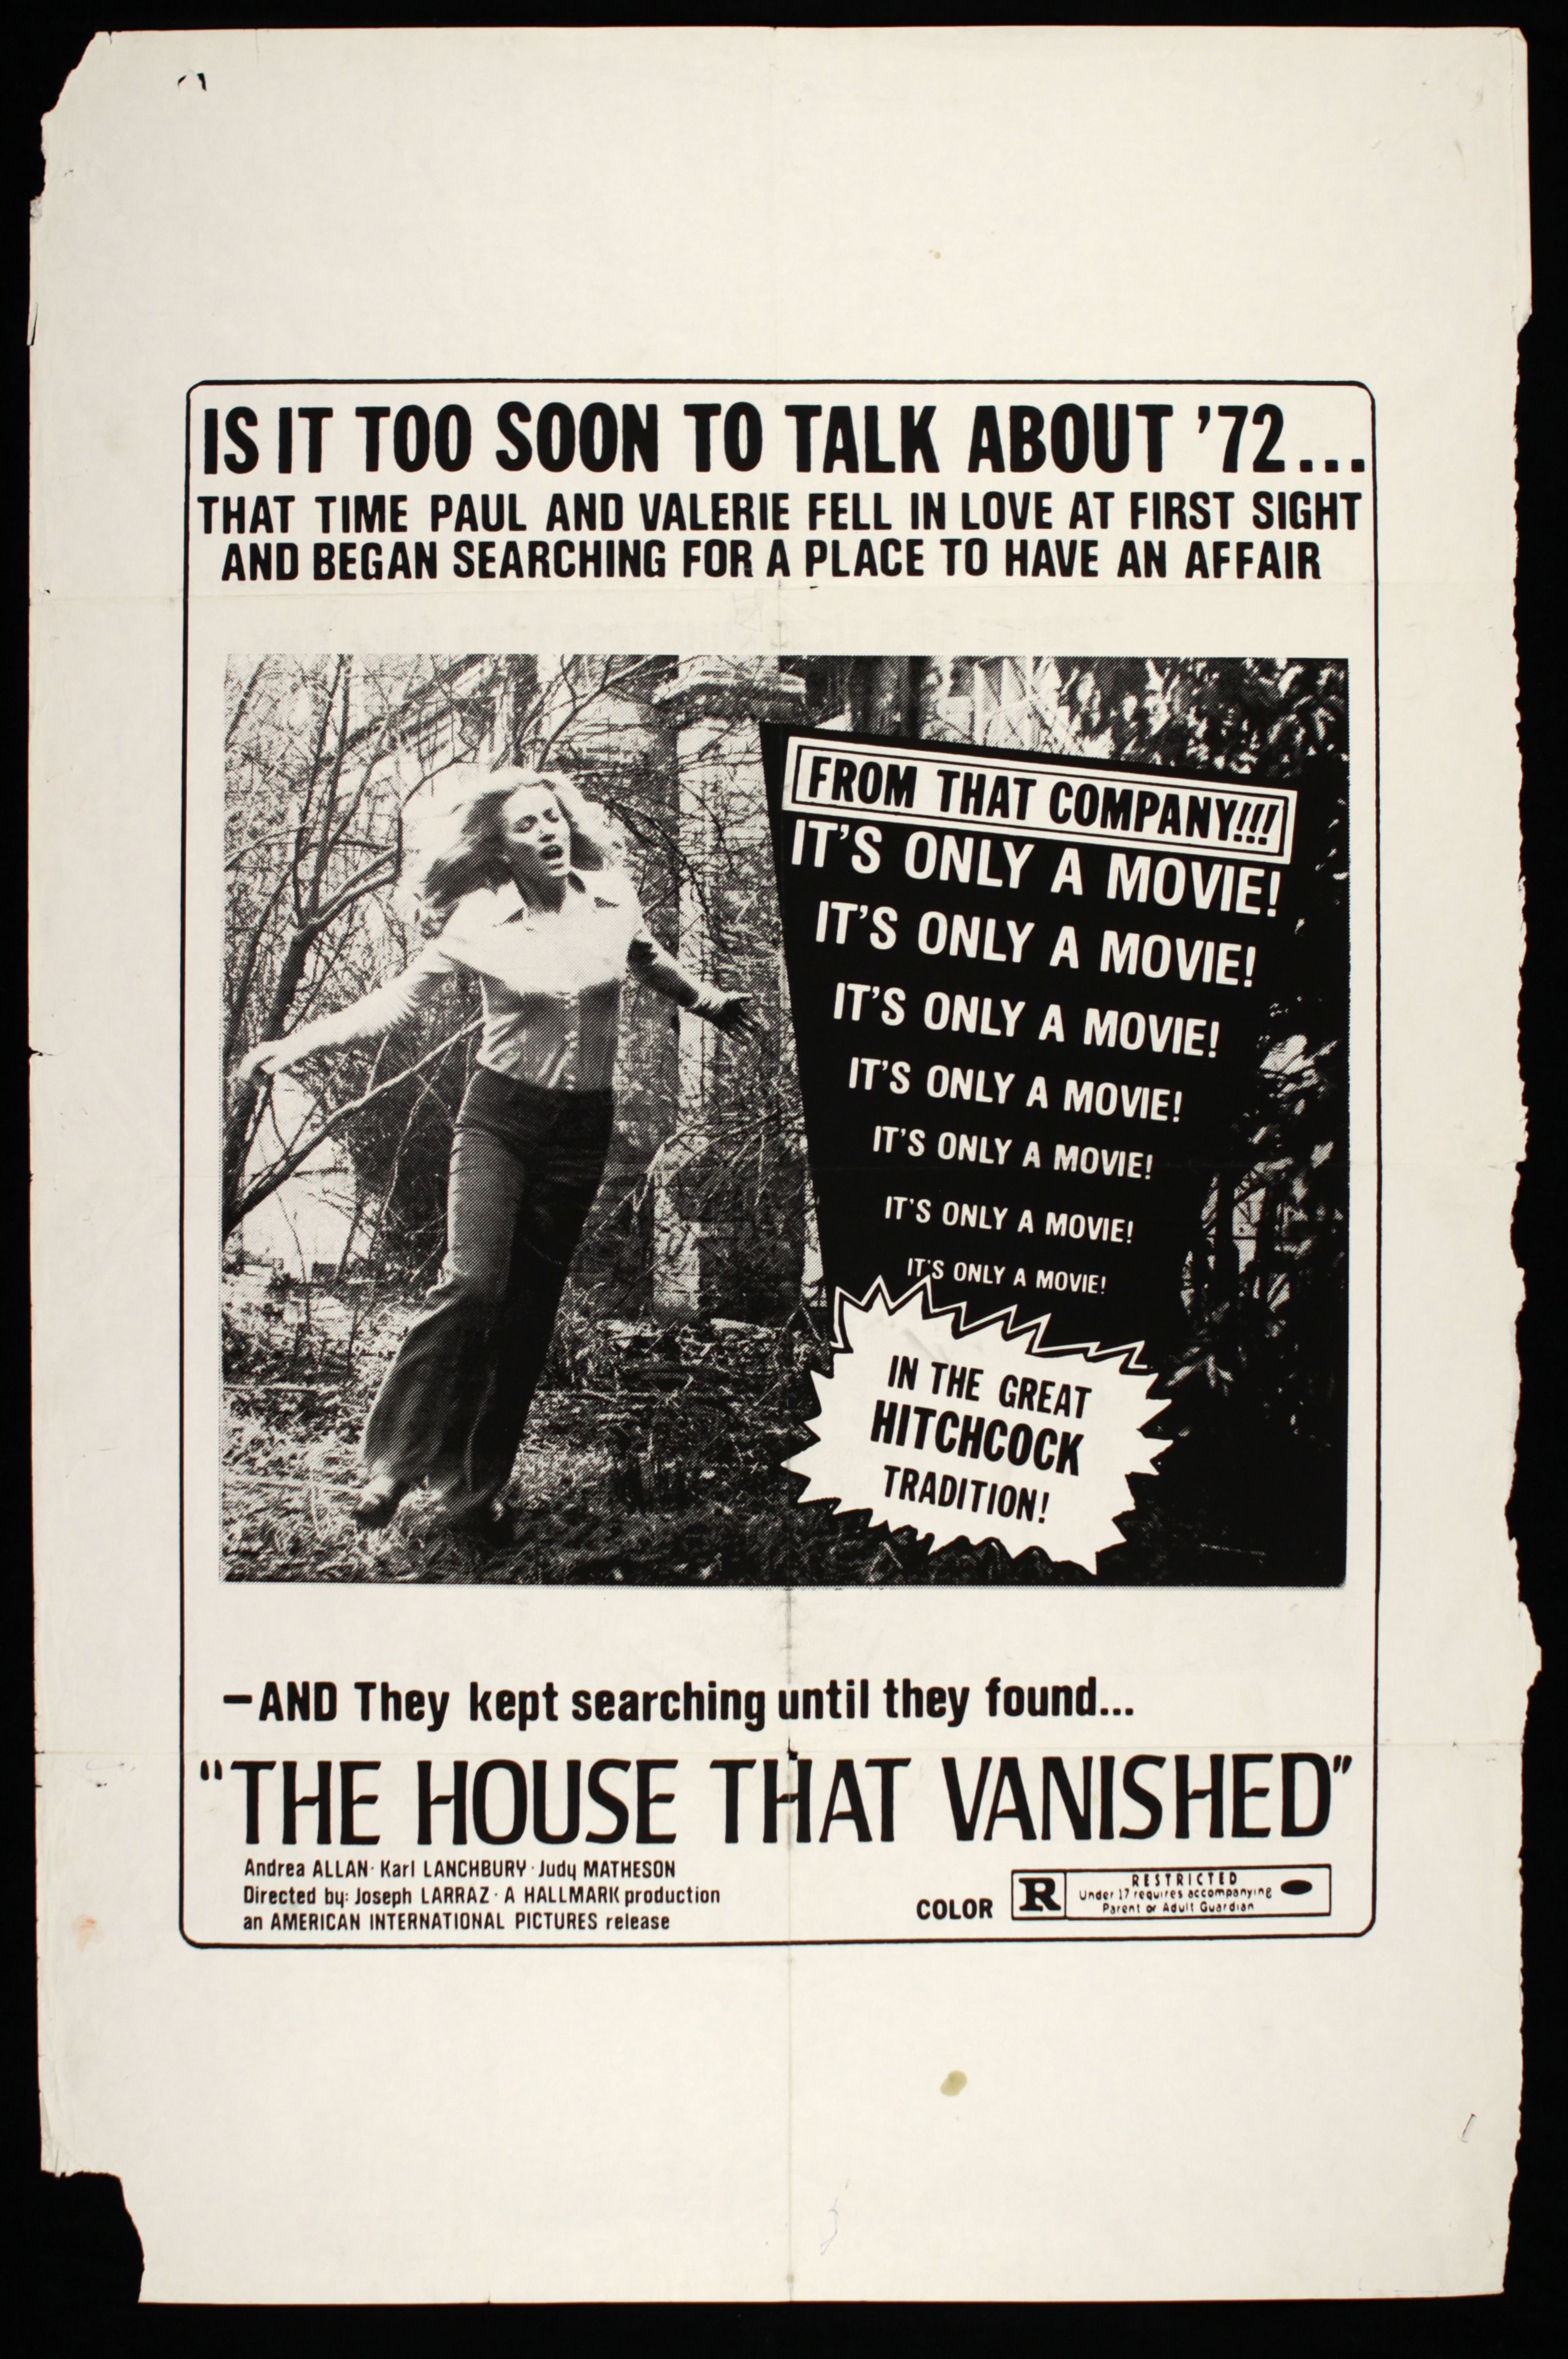 THE HOUSE THAT VANISHED